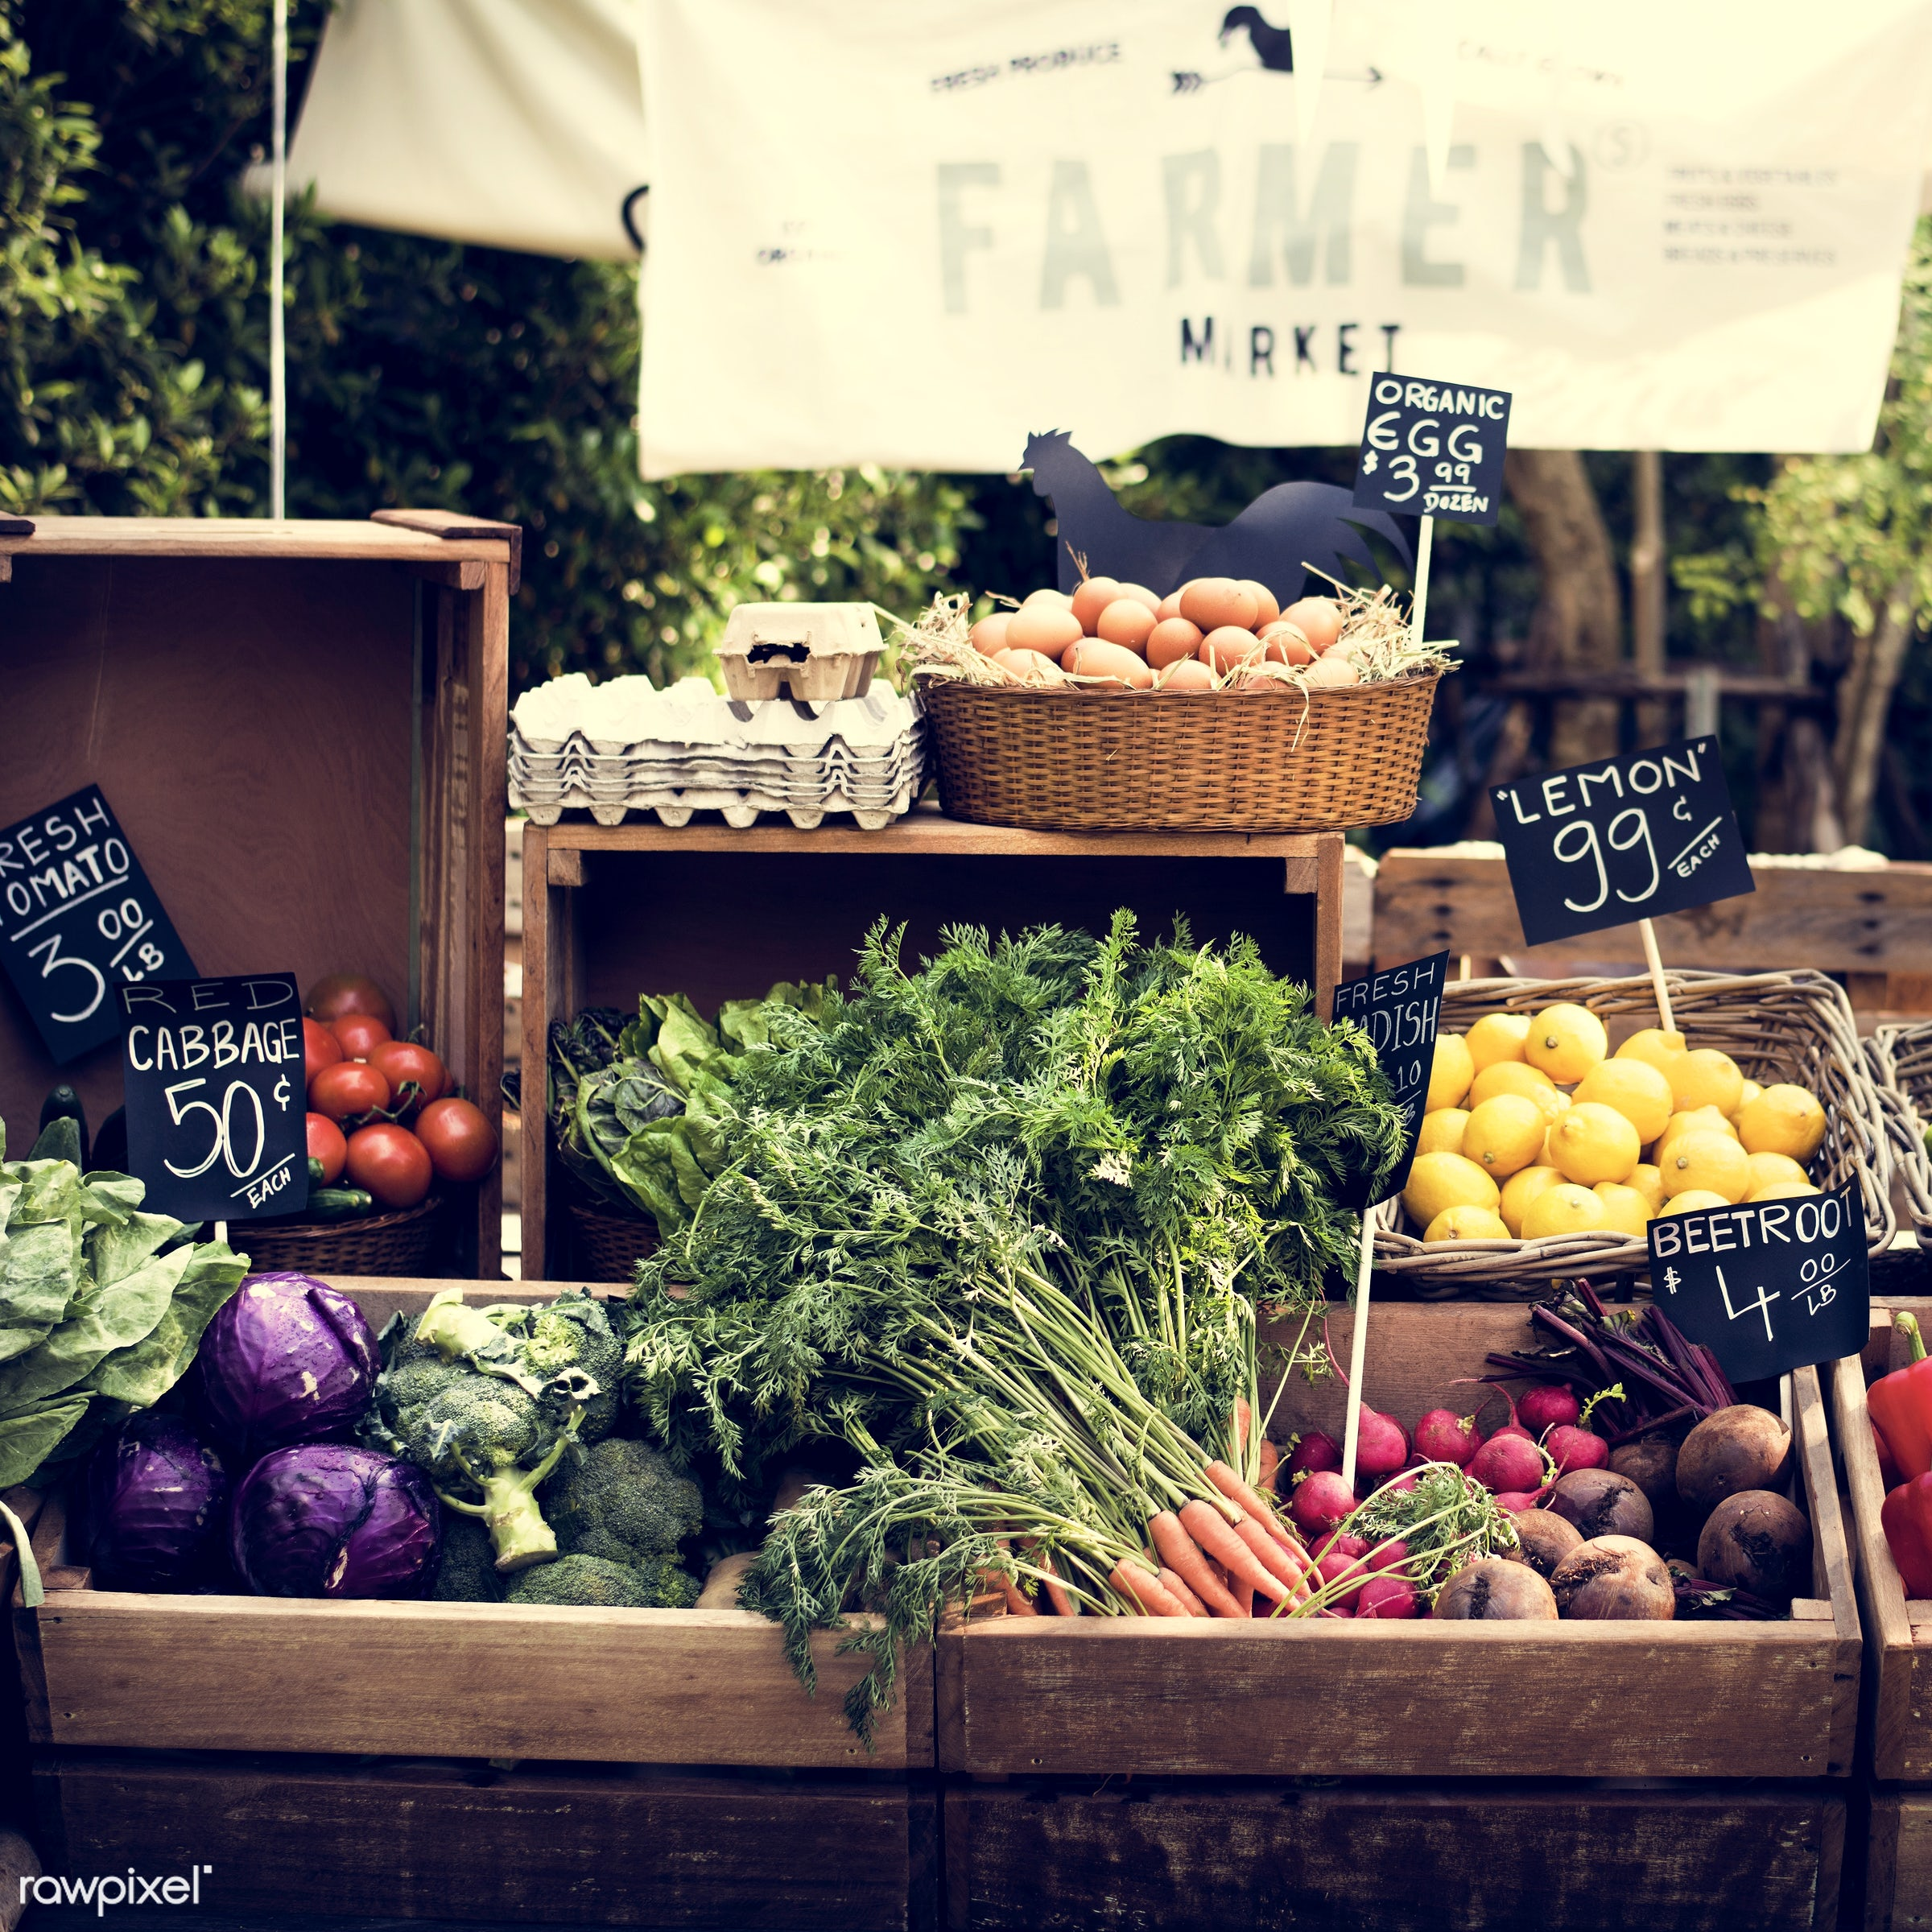 shop, stall, consumer, farmer, display, fair, tomatoes, sign, nutrition, eggs, market, price, cabbage, food, outdoors, trees...